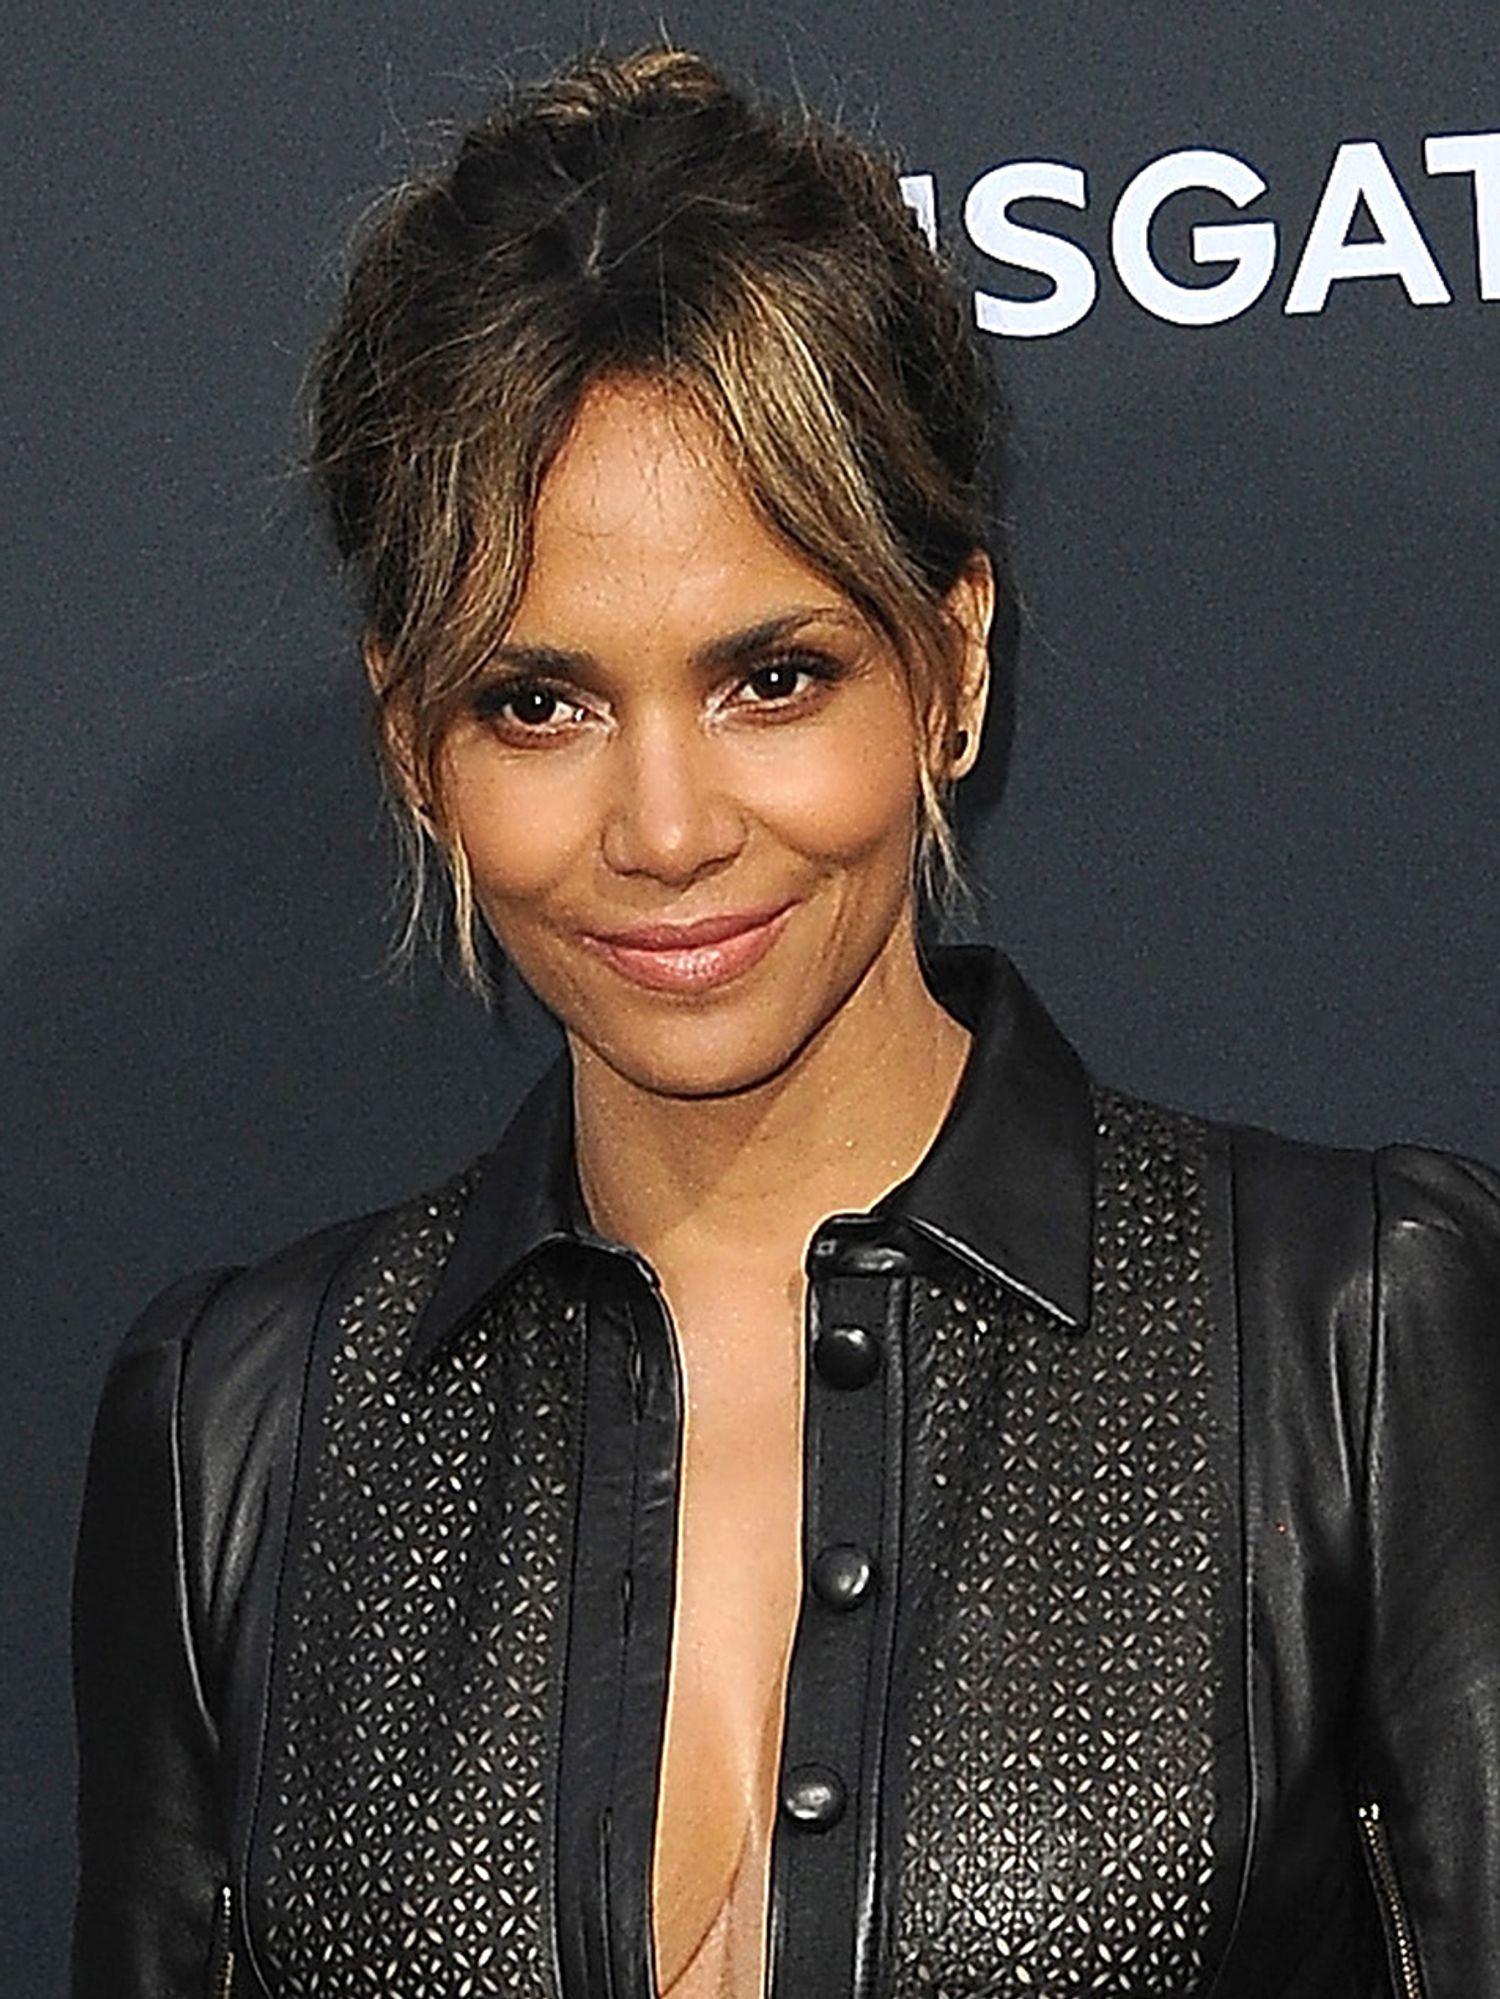 6 Cisgender Actors Who Should've Been Like Halle Berry and Turned Down Trans Roles